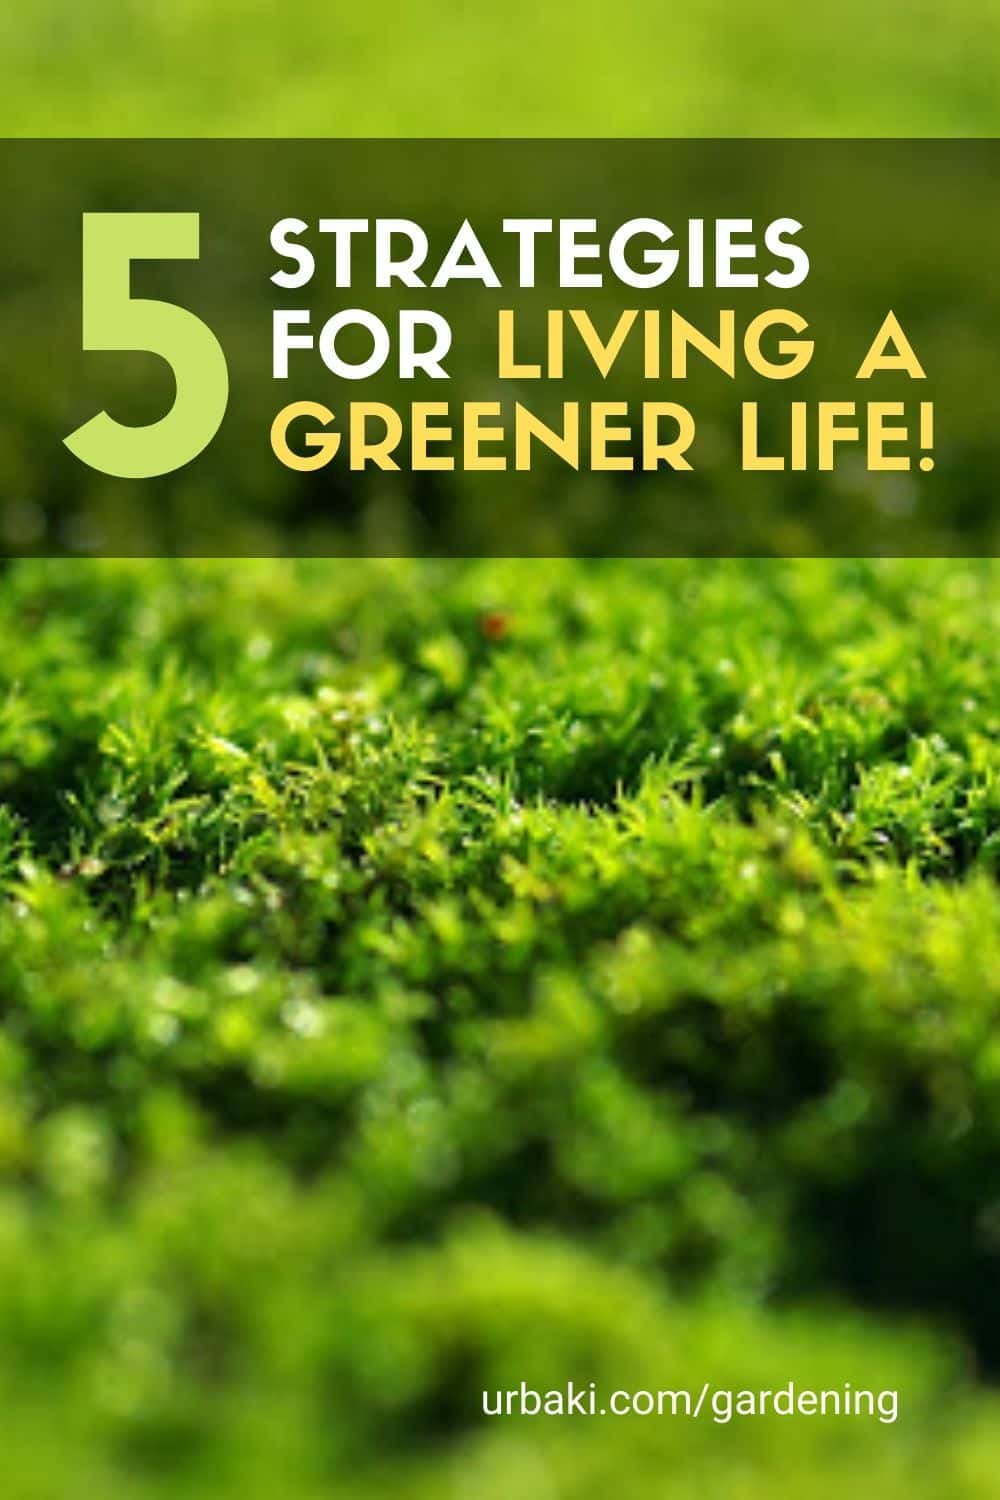 5 Strategies for Living a GREENER LIFE!